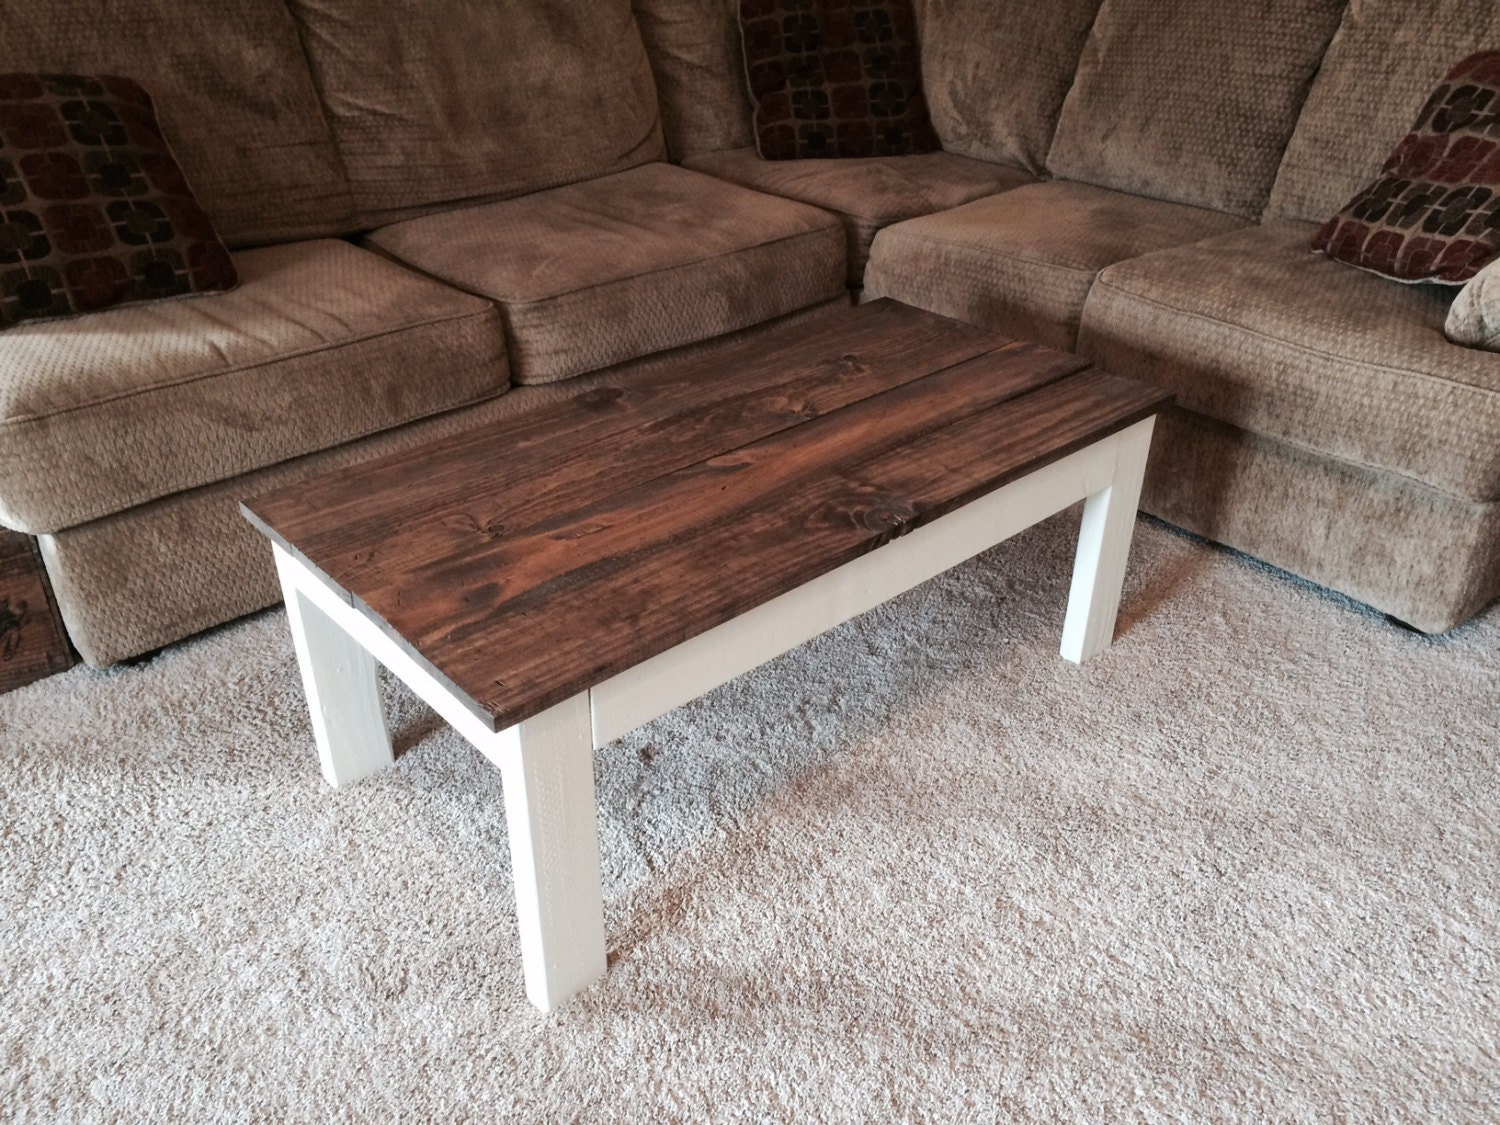 Distressed Rustic Coffee Table Antique White Base And